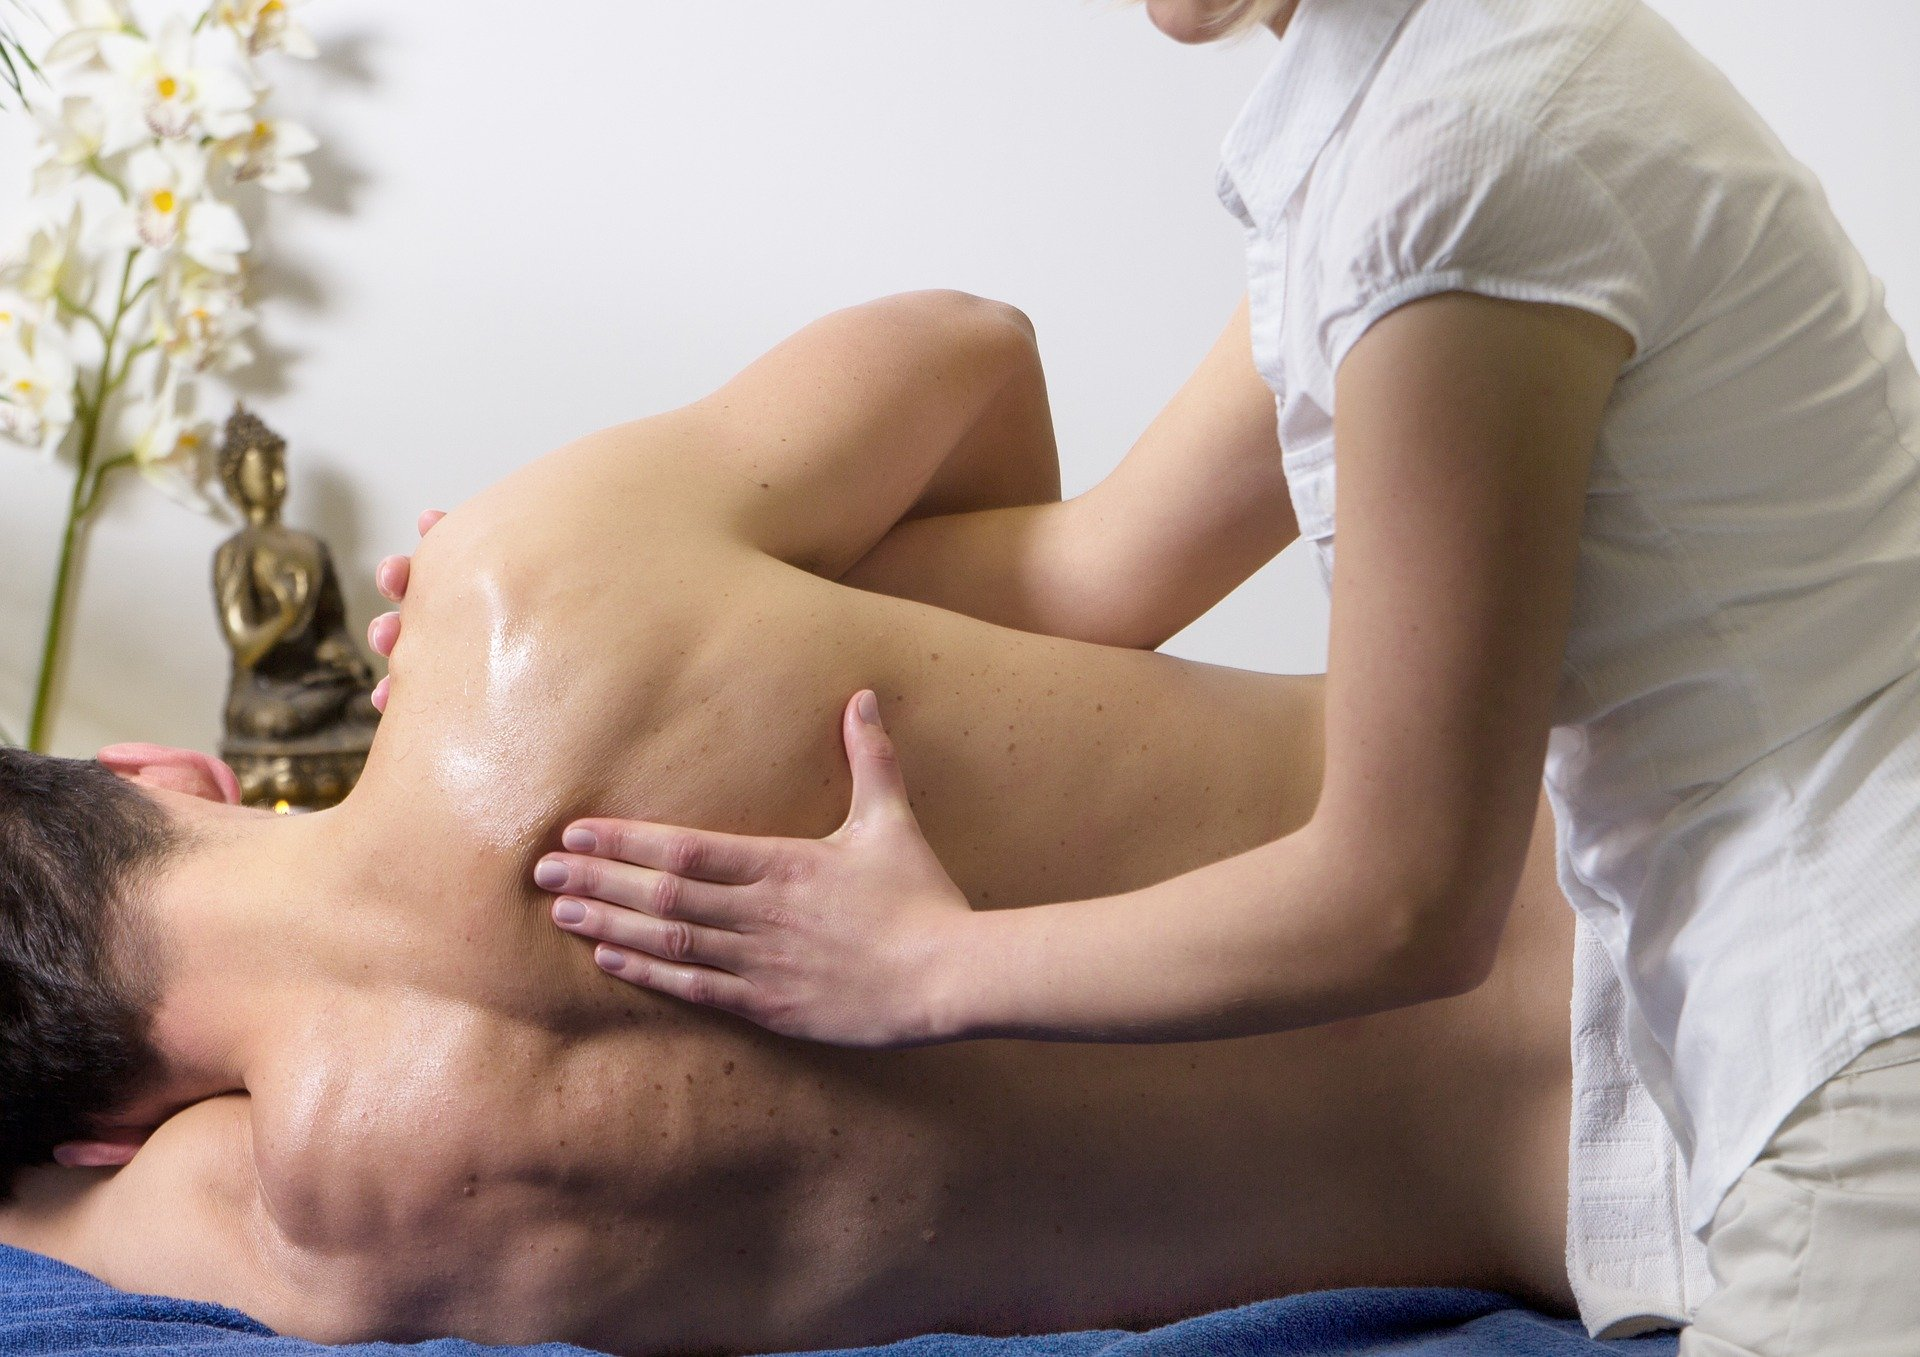 Sore after a massage therapy session? 3 Tips to Reduce Discomfort